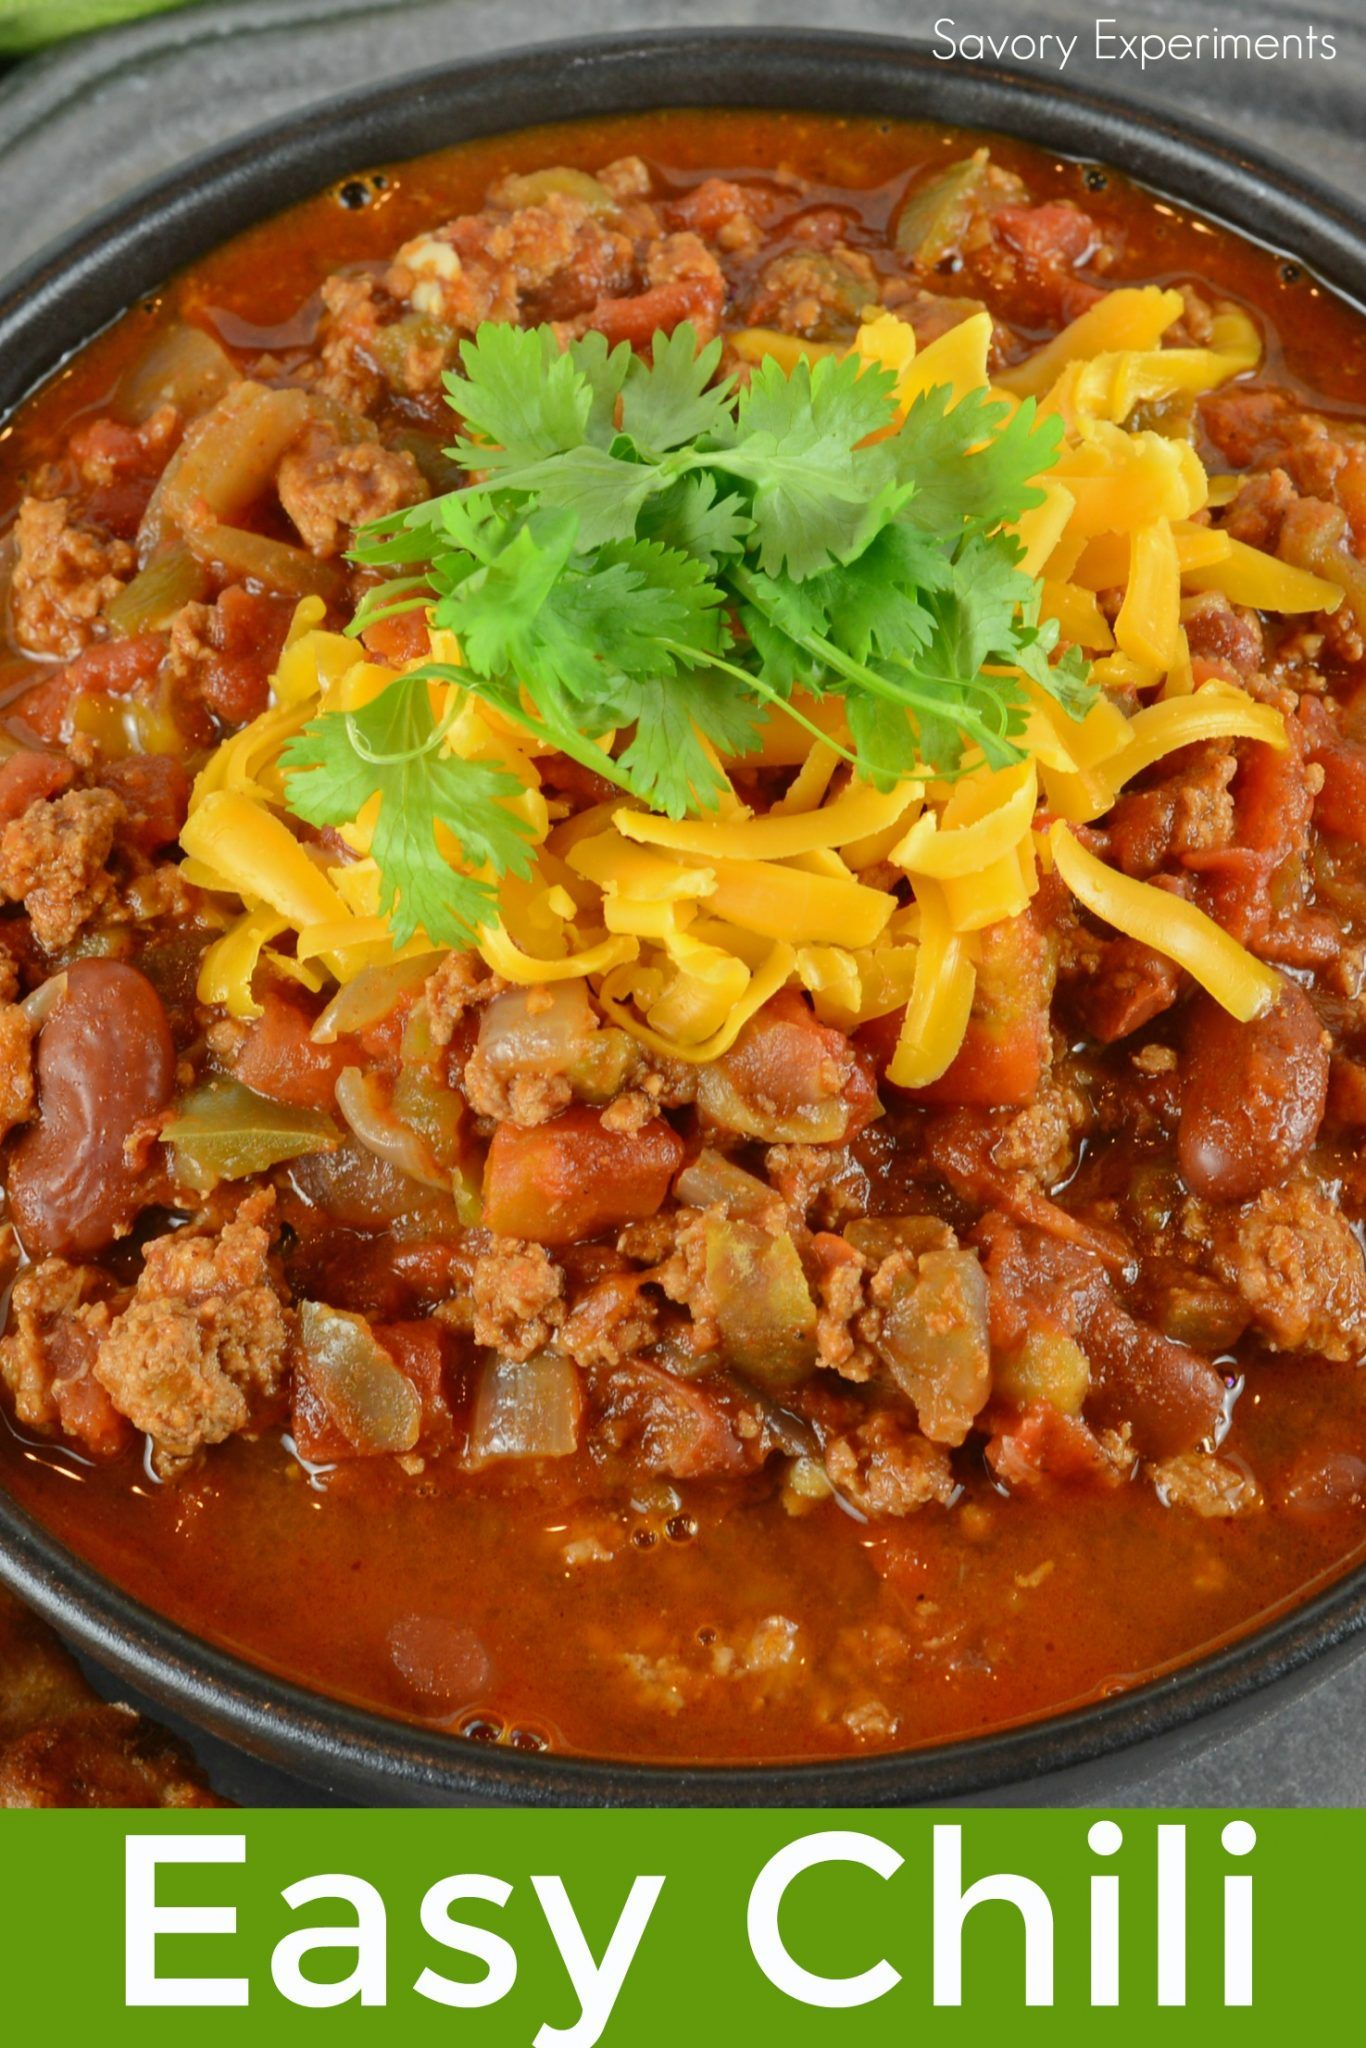 Easy Chili Is A Spicy Mix Full Of Ground Beef Italian Sausage And Vegetables But There Is A Secret Ingredient Easy Chili Best Chili Recipe Chili Recipe Easy